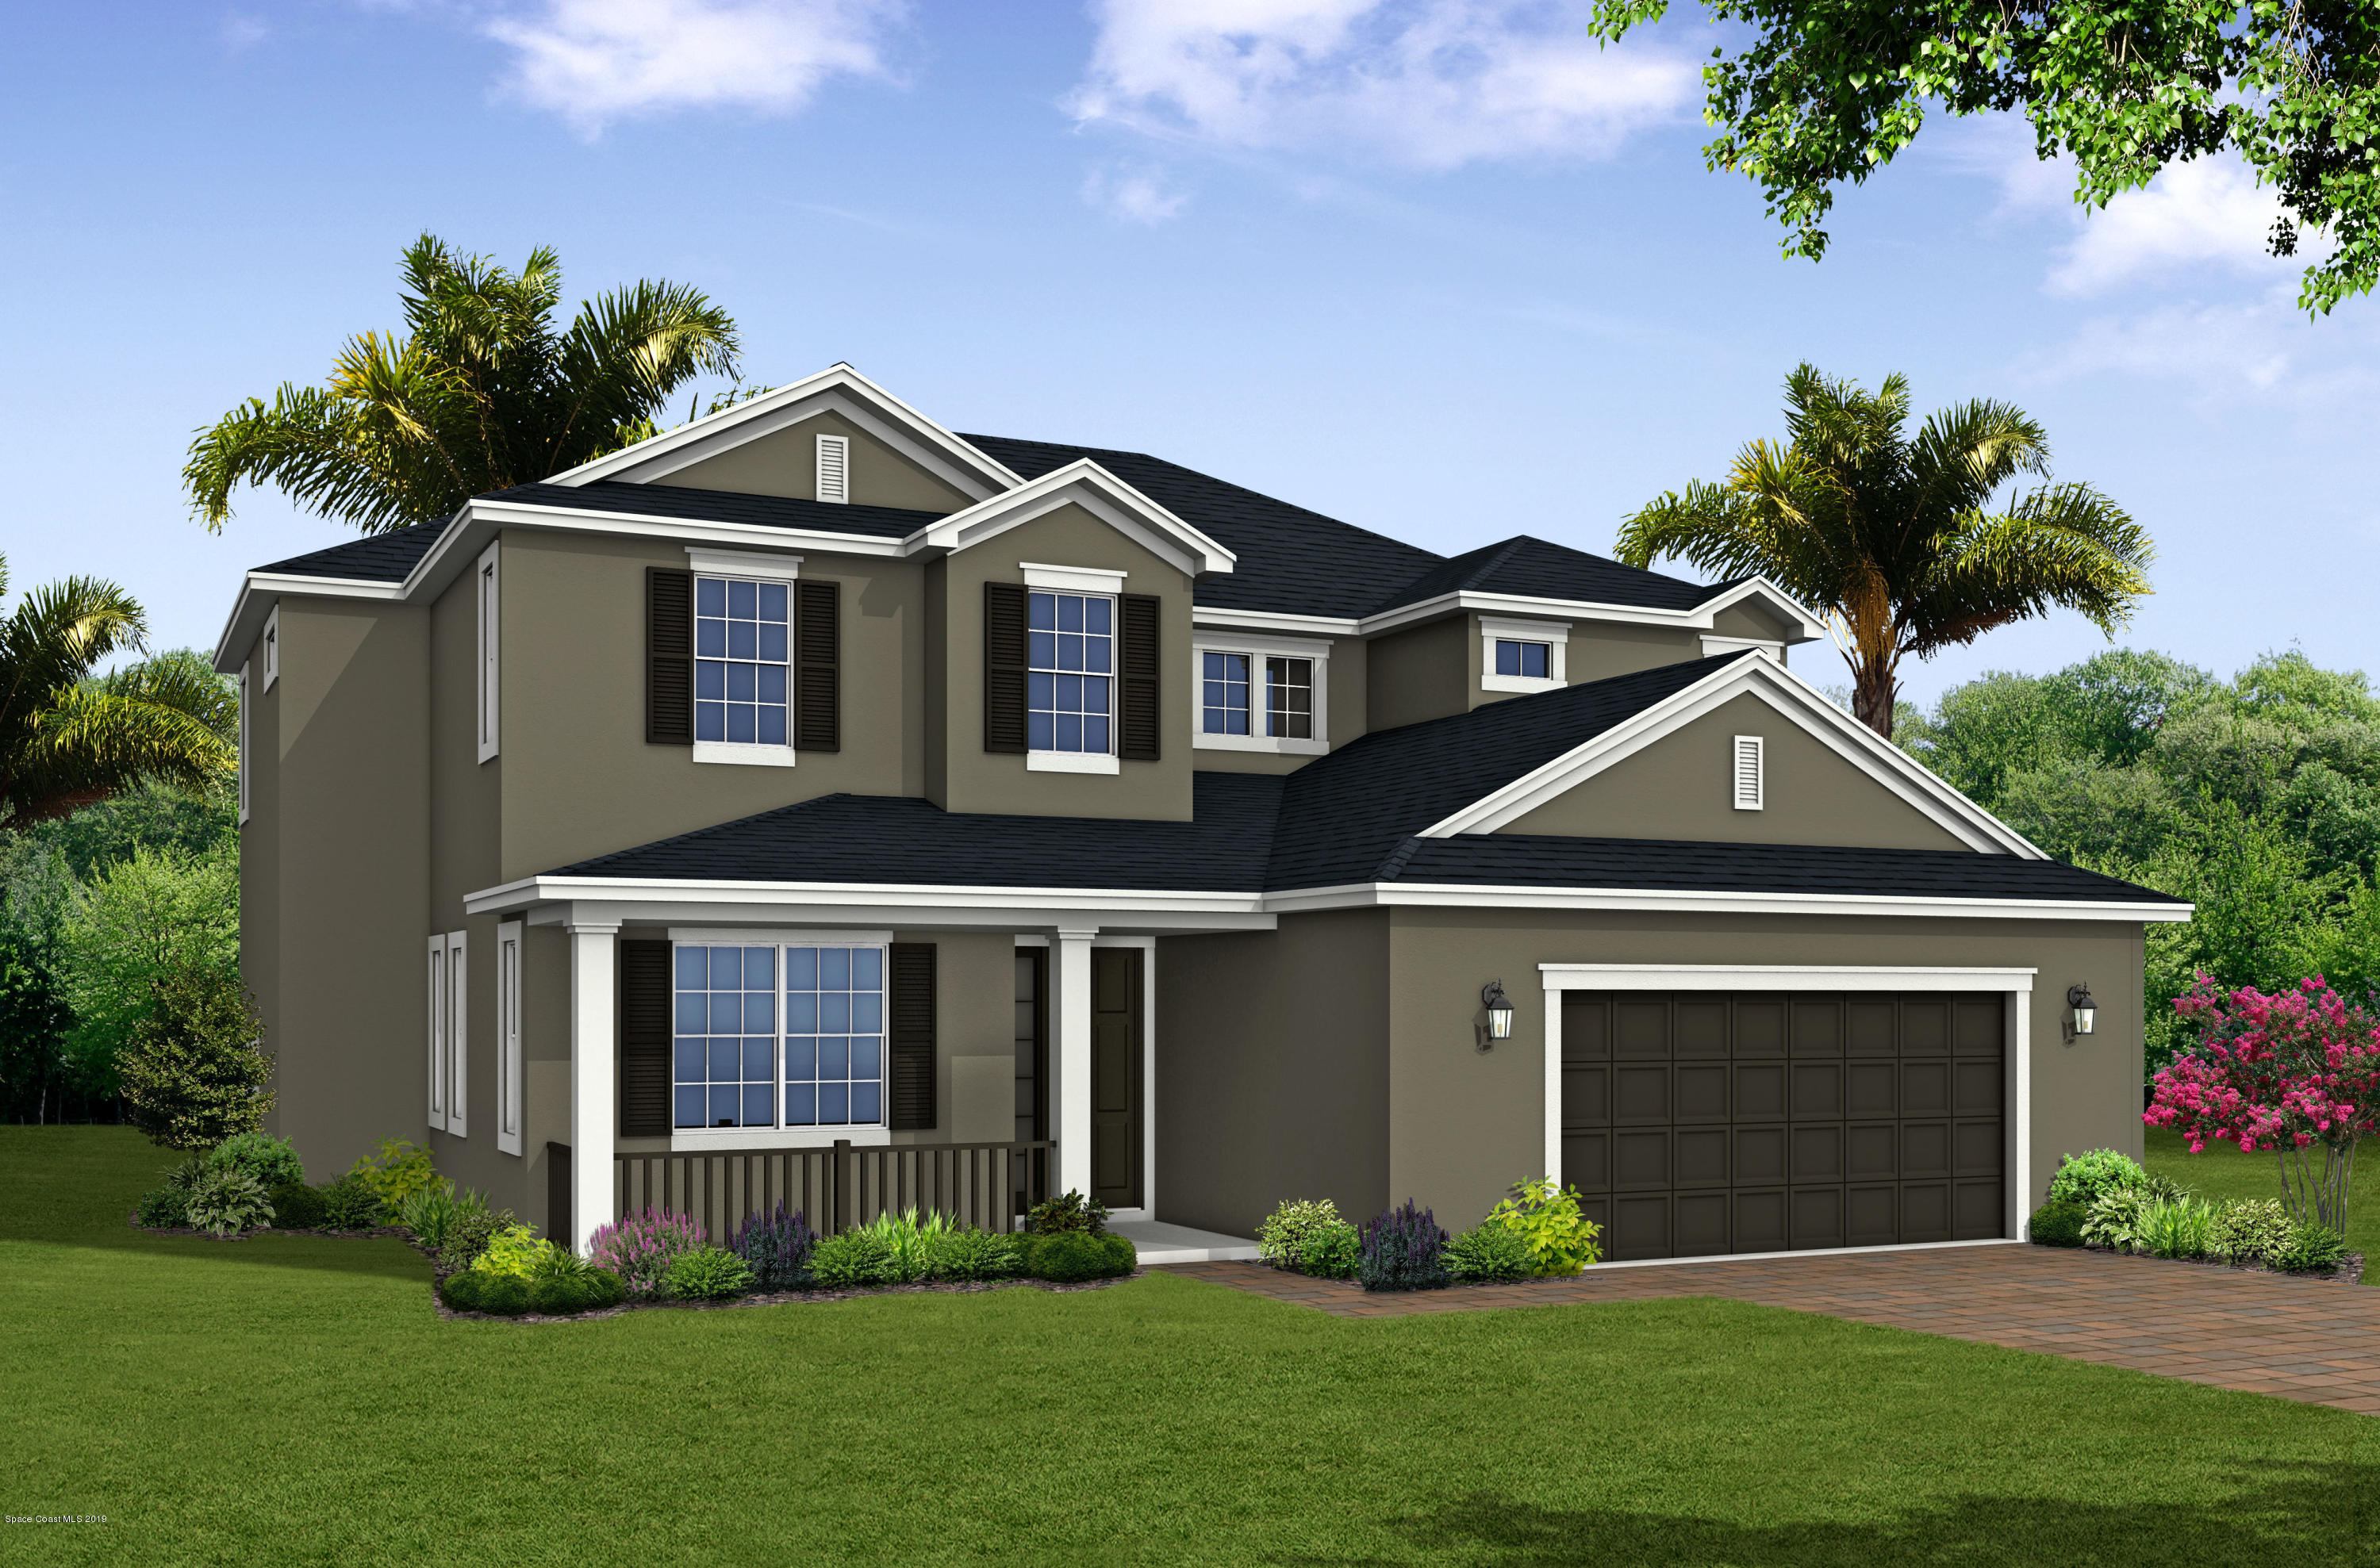 Single Family Homes for Sale at 7534 Poulicny Melbourne, Florida 32940 United States